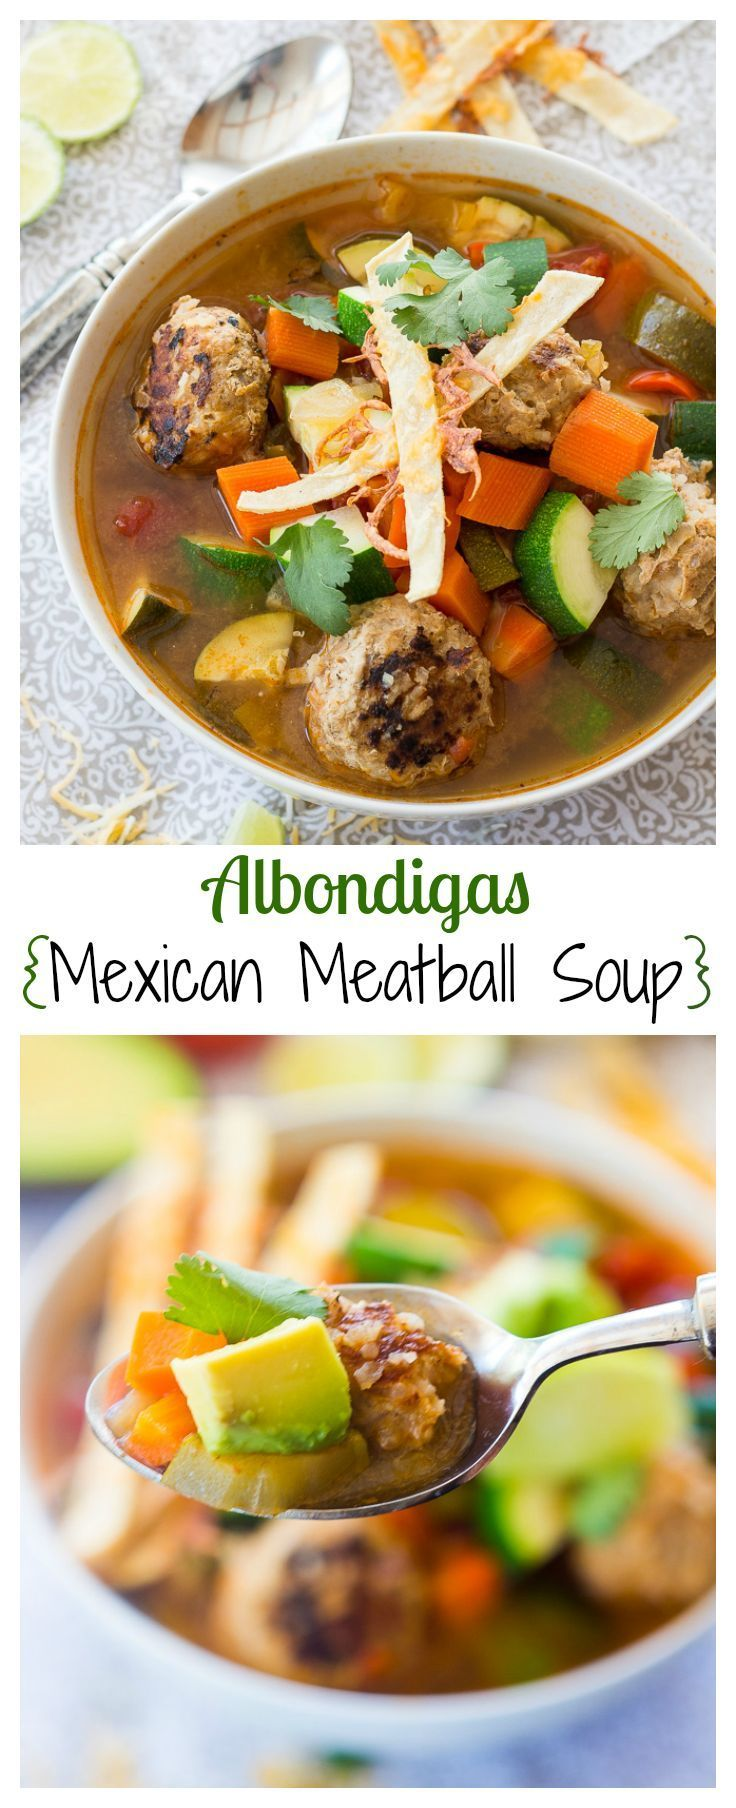 This classic Mexican meatball soup is smokey, spicy and hearty, perfect for a cold winter evening. If you enjoy authentic Mexican food, this soup is for you.